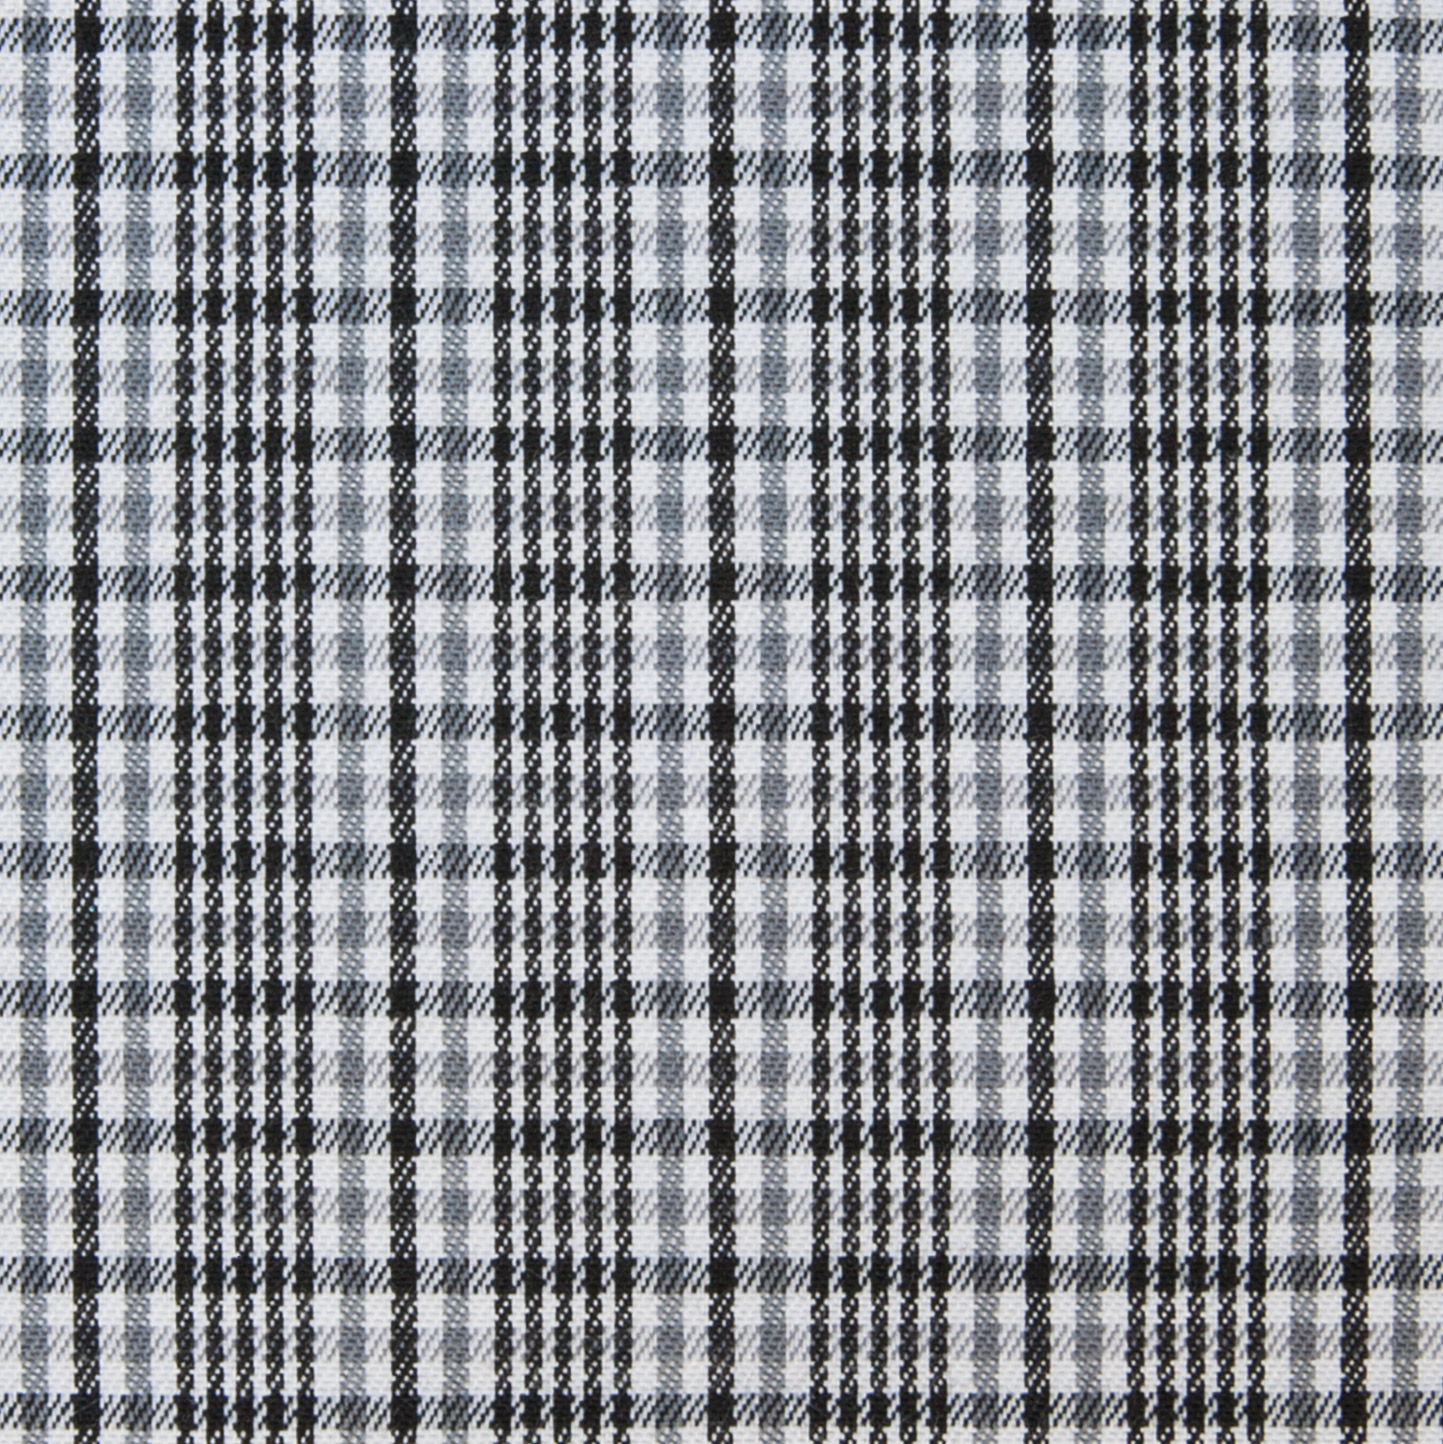 Buy tailor made shirts online - Arturo Collection - Grey and Black Check